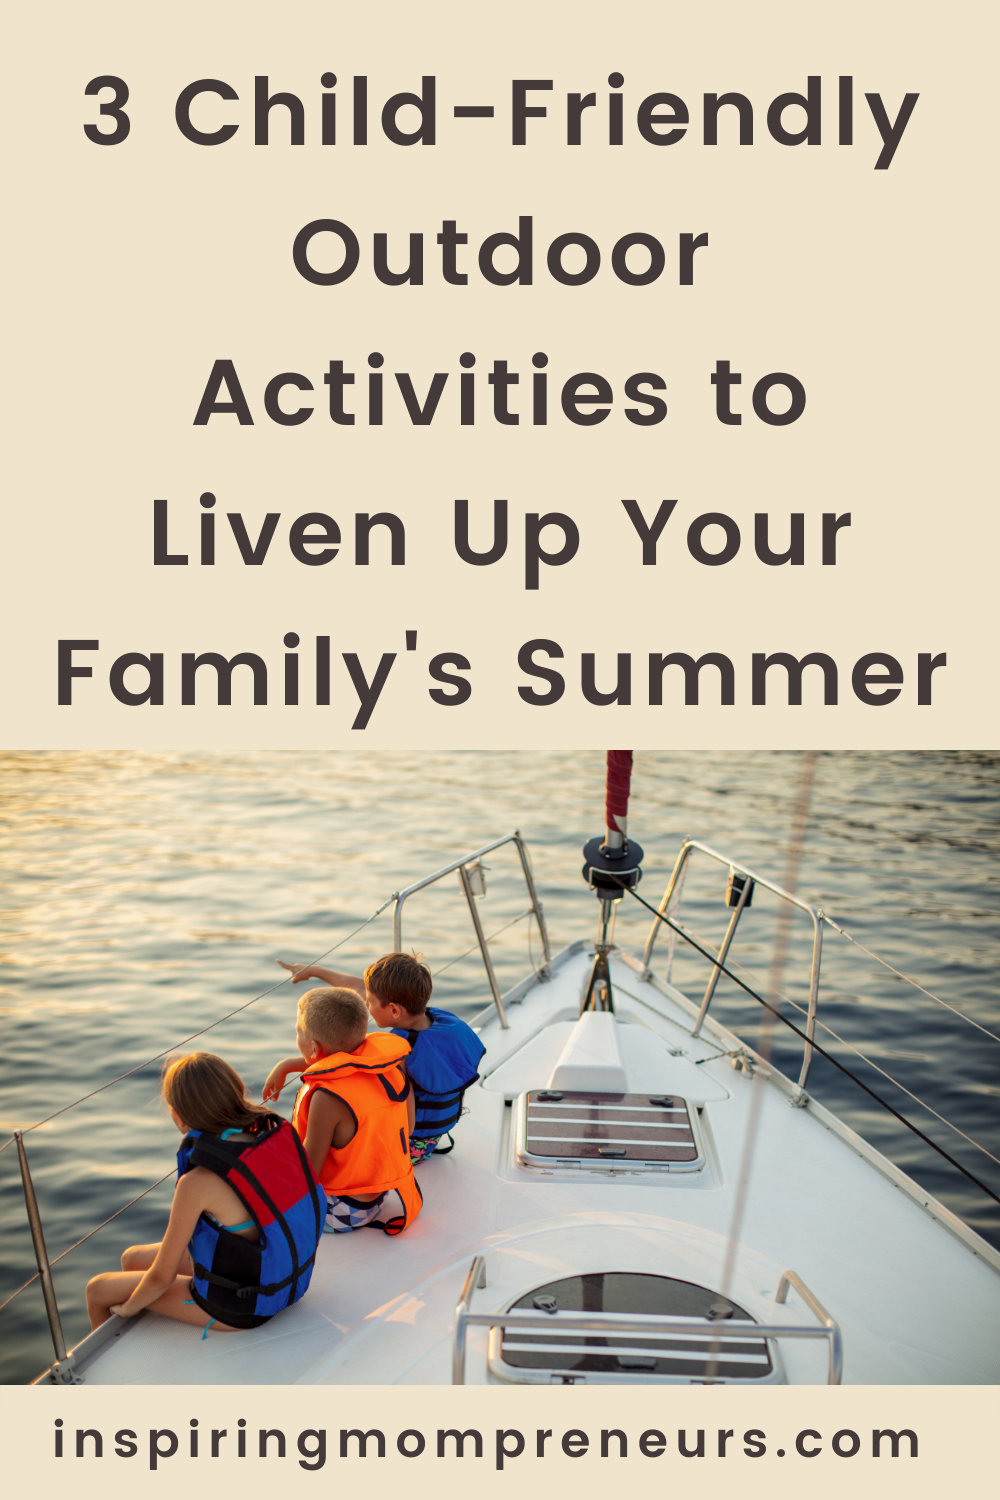 Summer is the perfect time to get outside and enjoy the surrounding beauty. Here are three child-friendly outdoor activities that will liven up your summer.